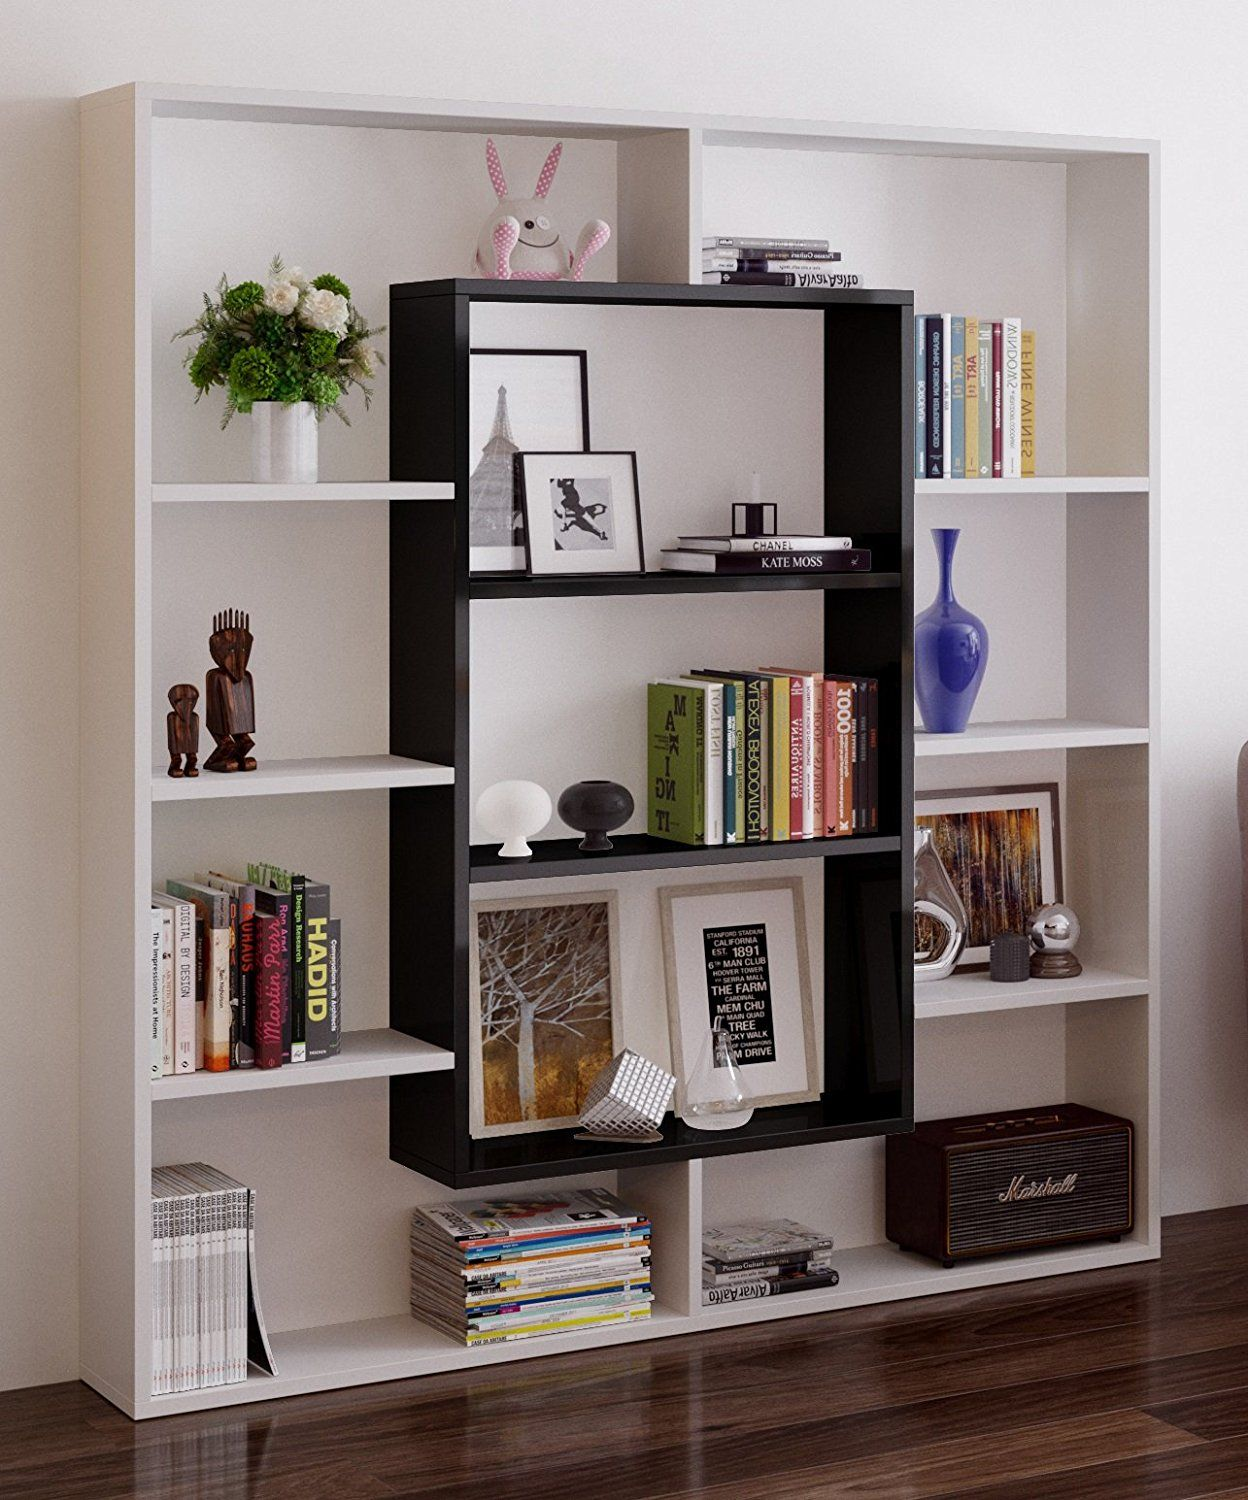 Modern room divider bookcase - Venus Bookcase Room Divider Free Standing Shelving Unit For Living Room Or Office In